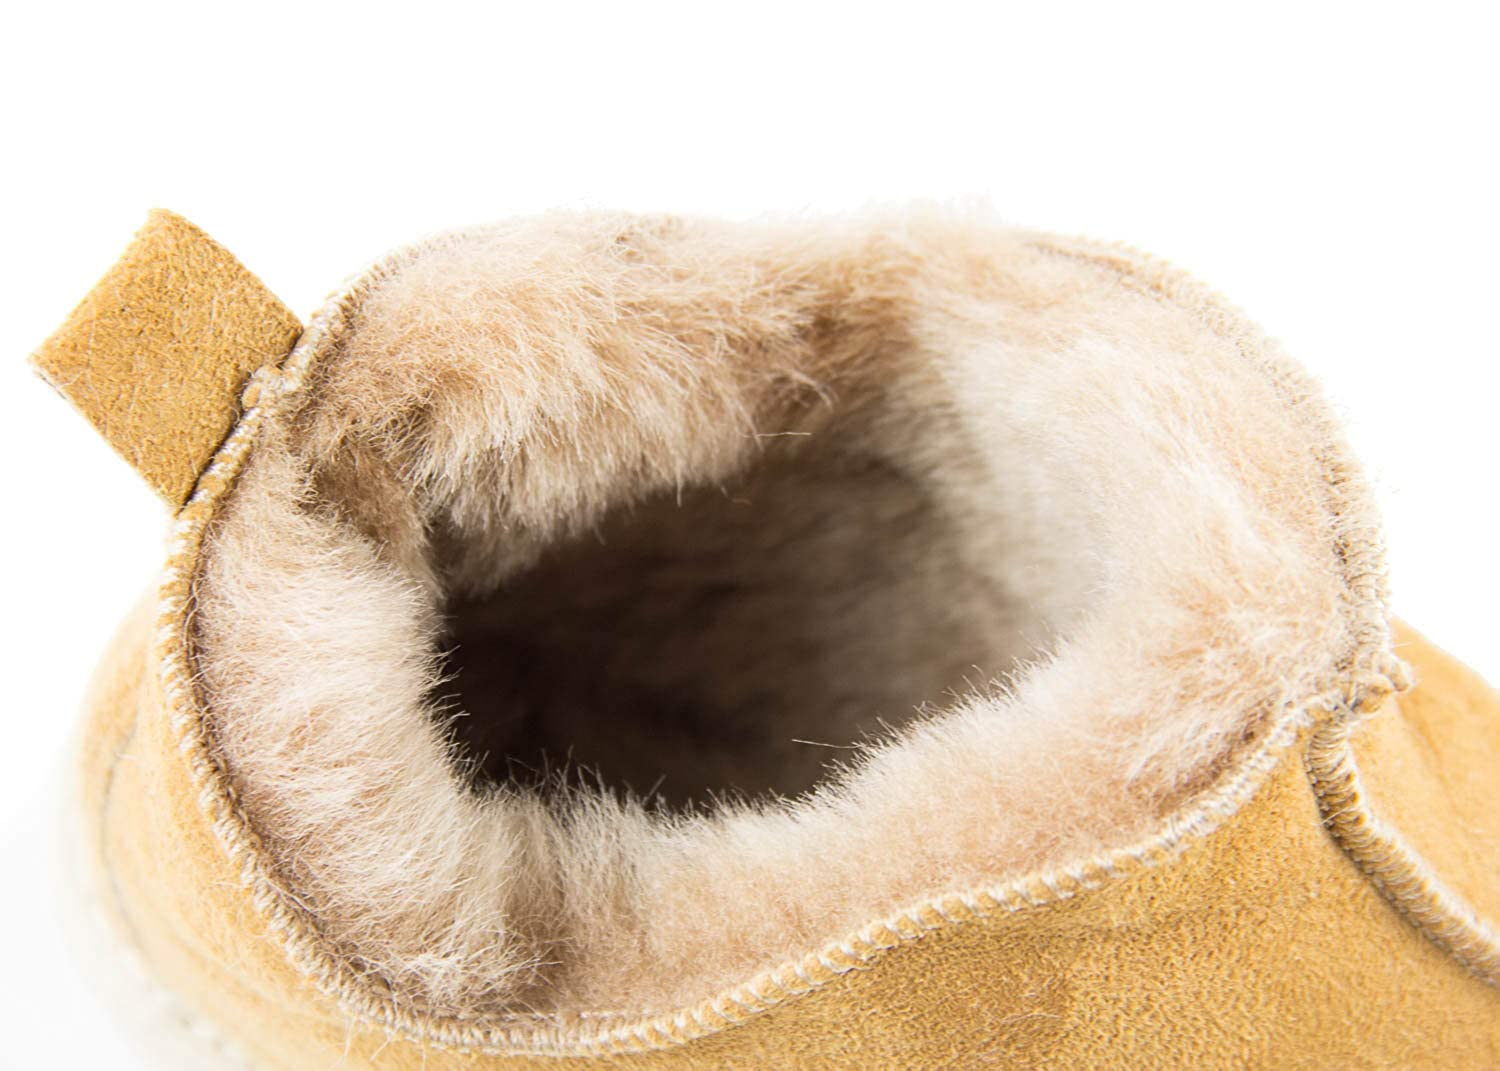 da2fc9e2376 Yeti & Sons Hand Crafted Luxury Men's 100% Sheepskin Lined Ankle Hardsole  Boot Slippers